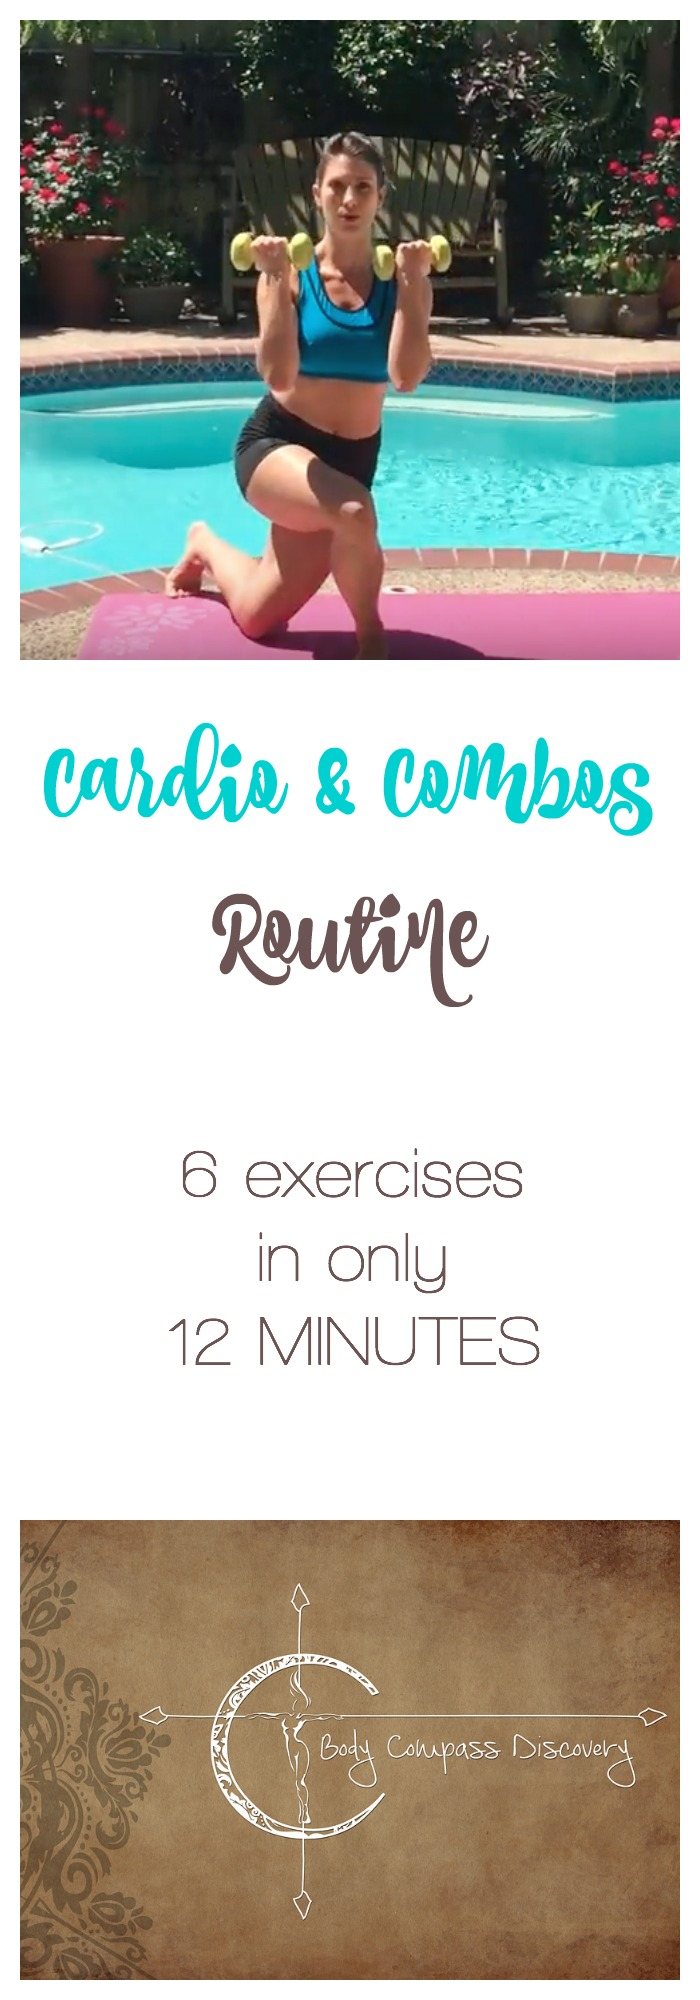 cardio and combos routine feature ad